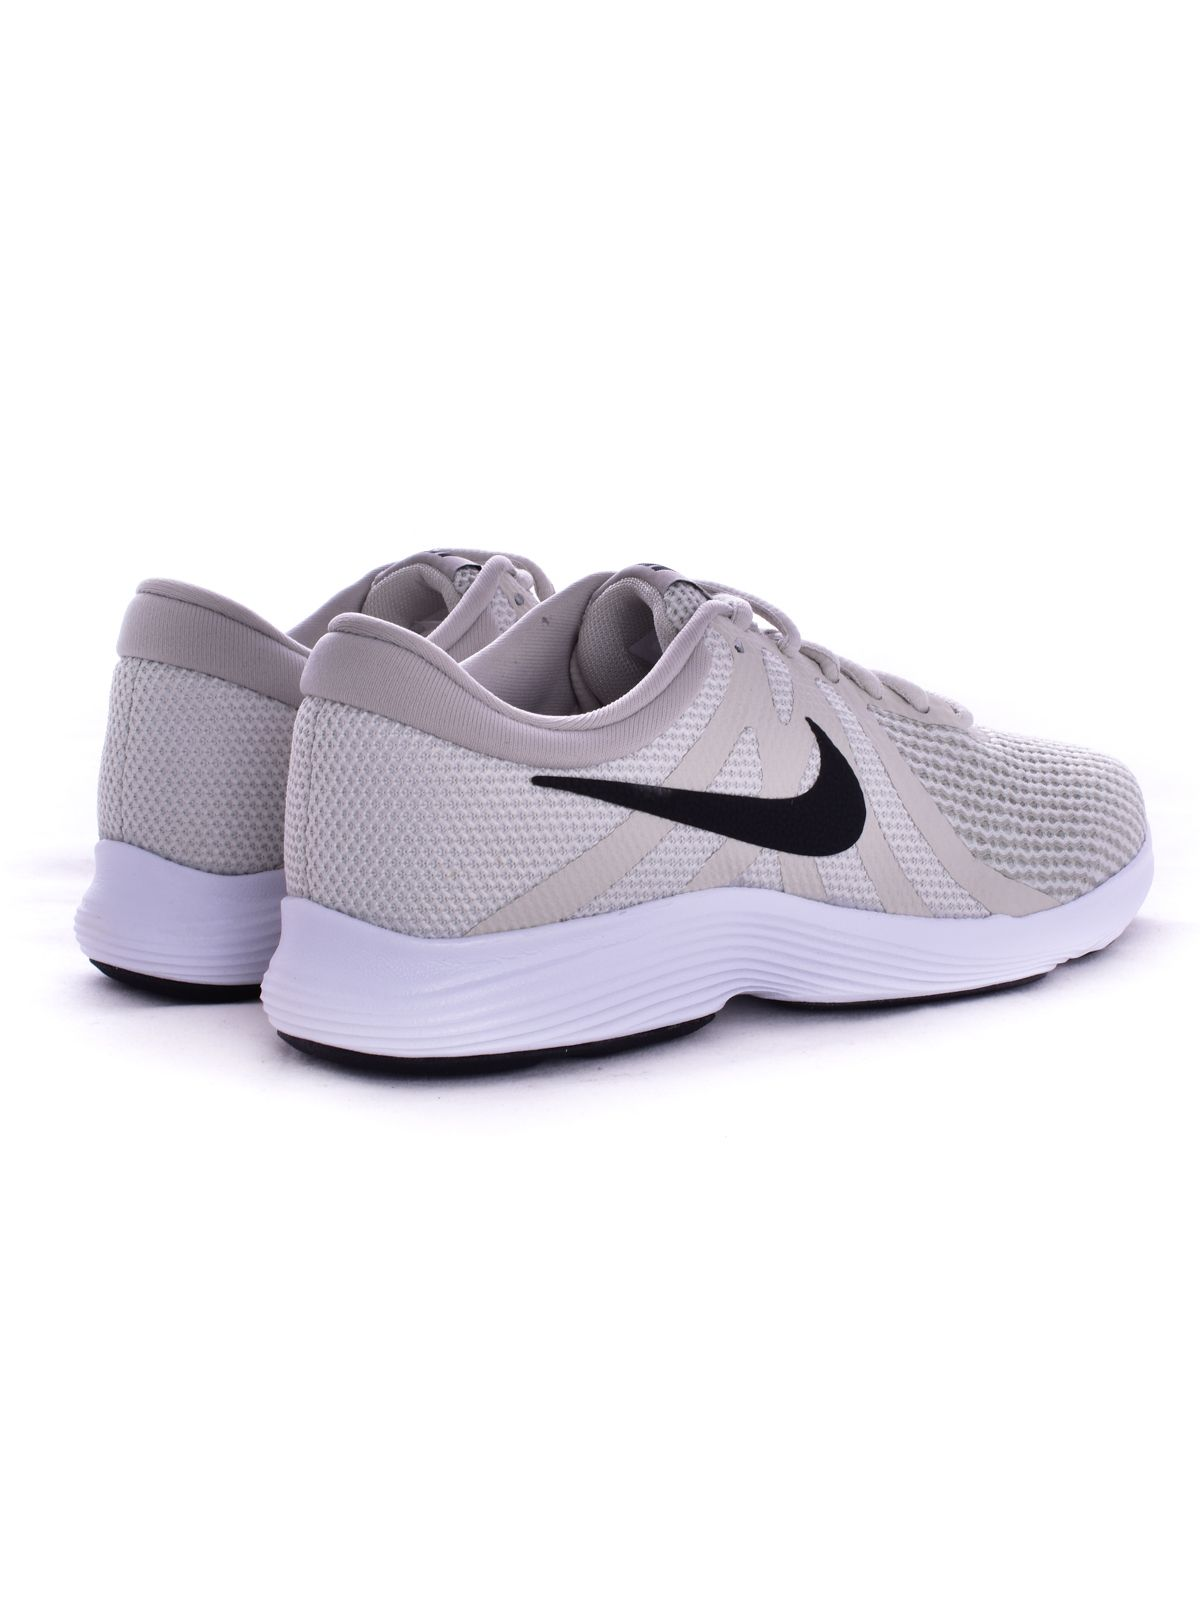 ... Nike női cipő Revolution 4 Running Shoe (EU) ... 39772959fb